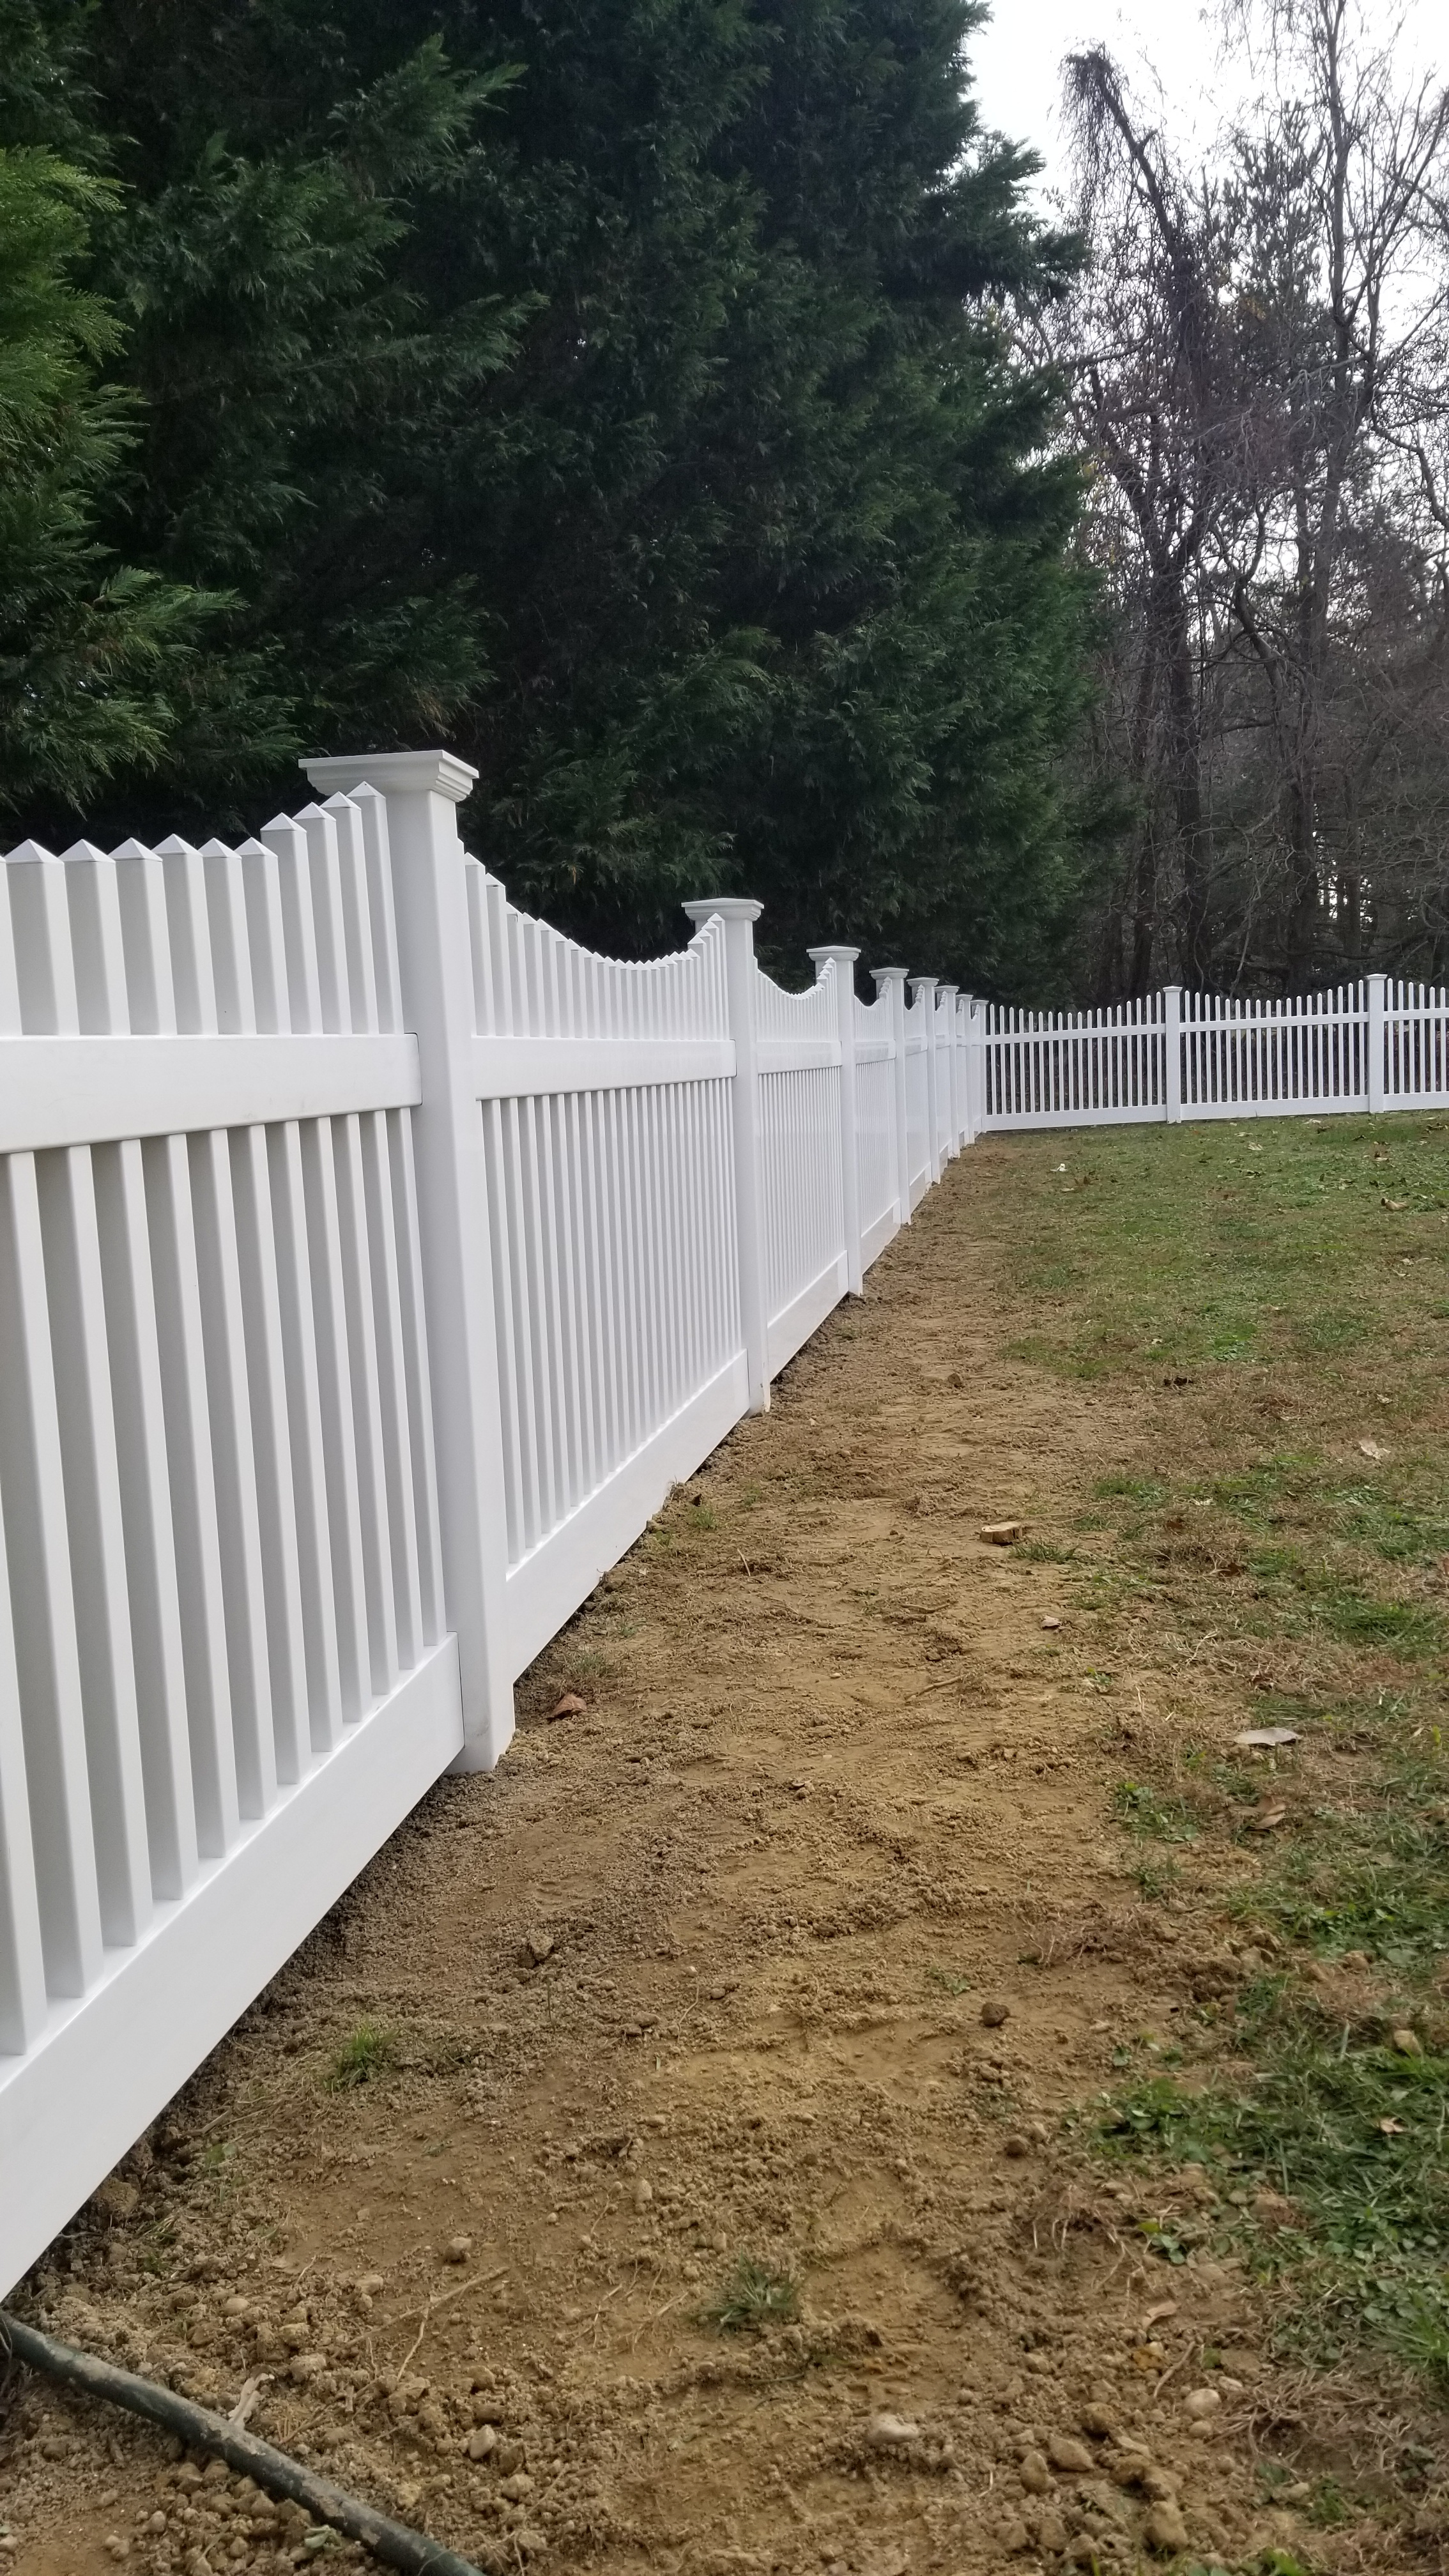 A white PVC fence with slots